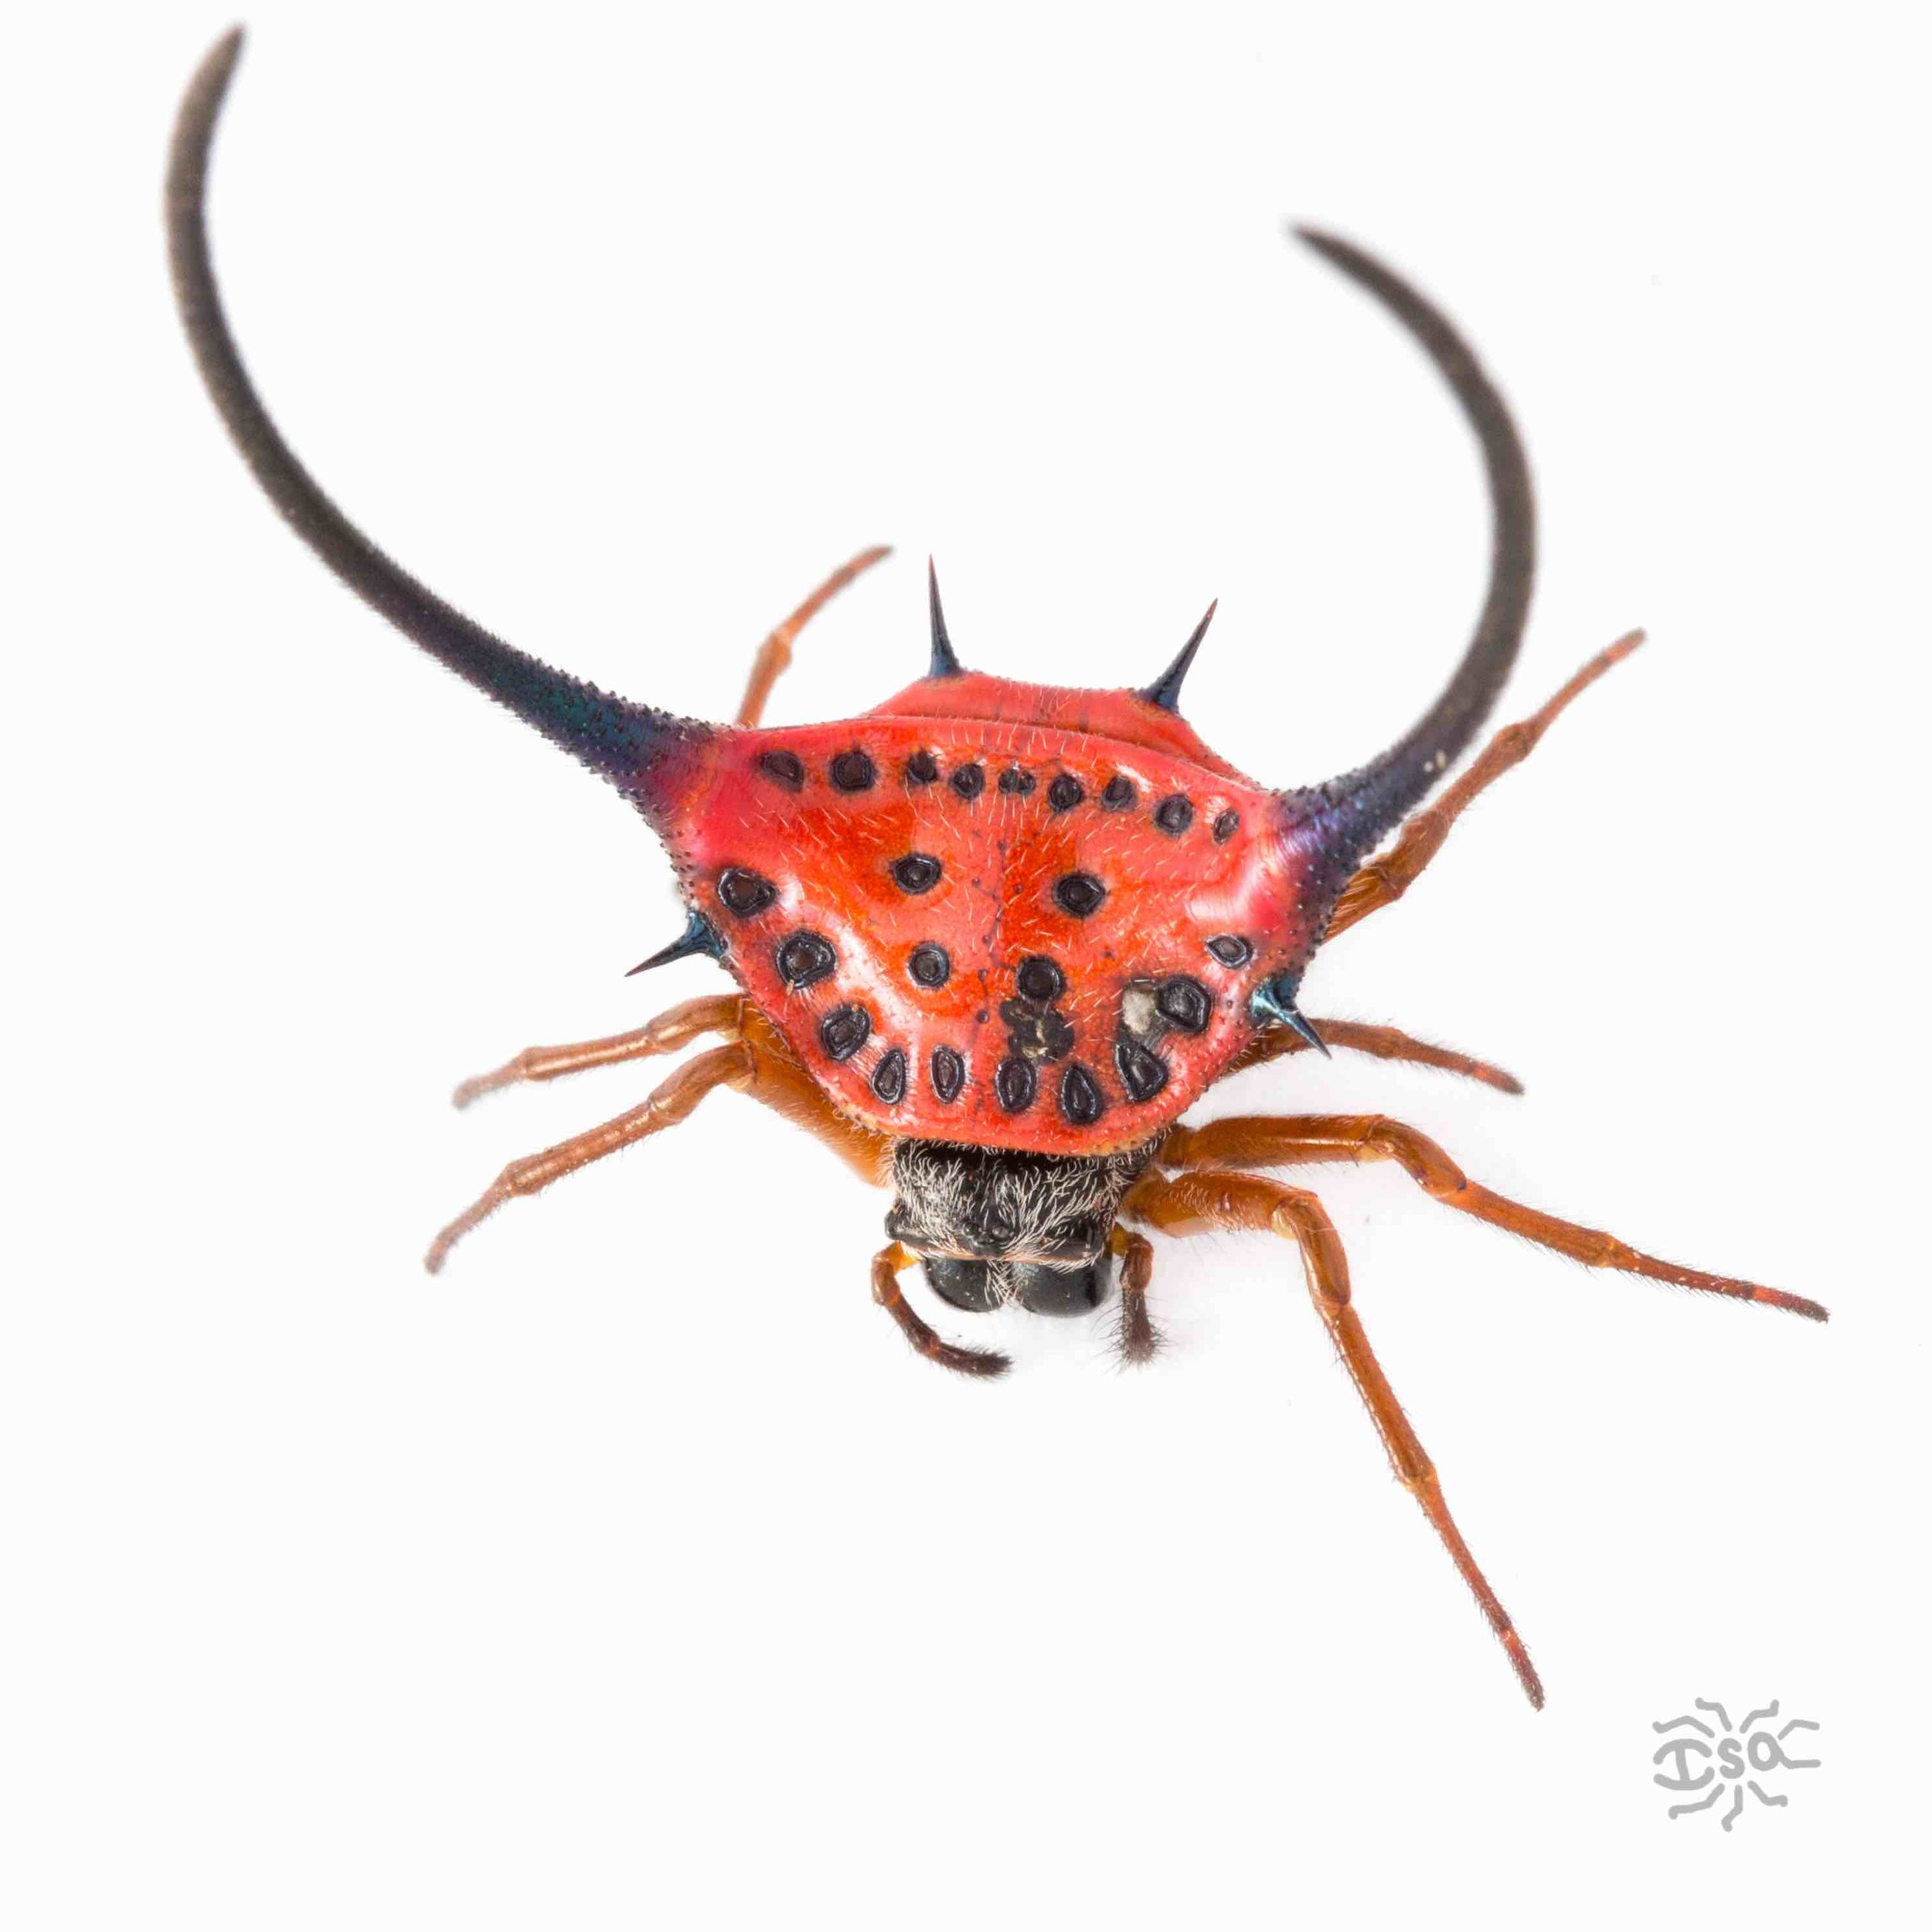 20150319 Borneo betancourt red spider.jpeg